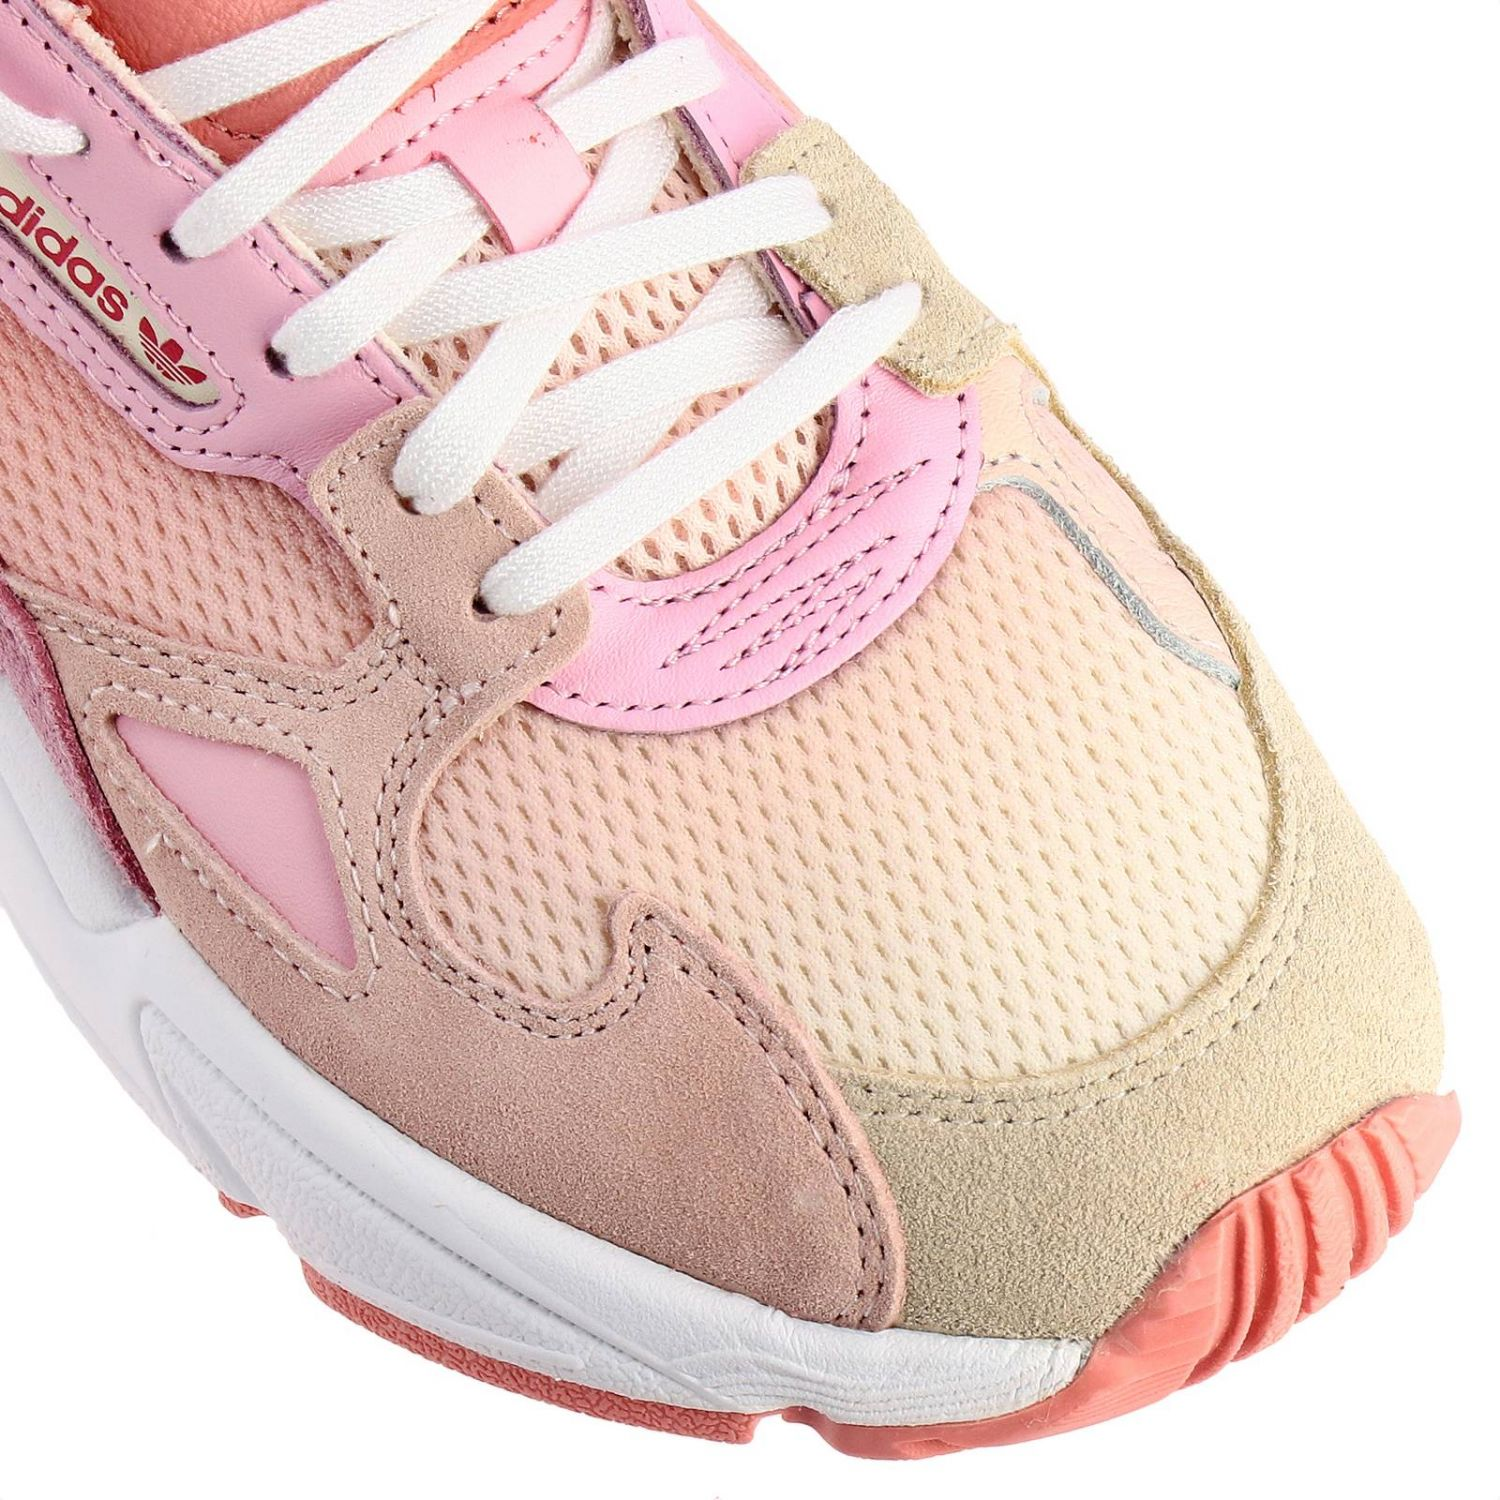 Sneakers Adidas Originals: Sneakers Falcon W Adidas Originals in rete pelle e camoscio rosa 3